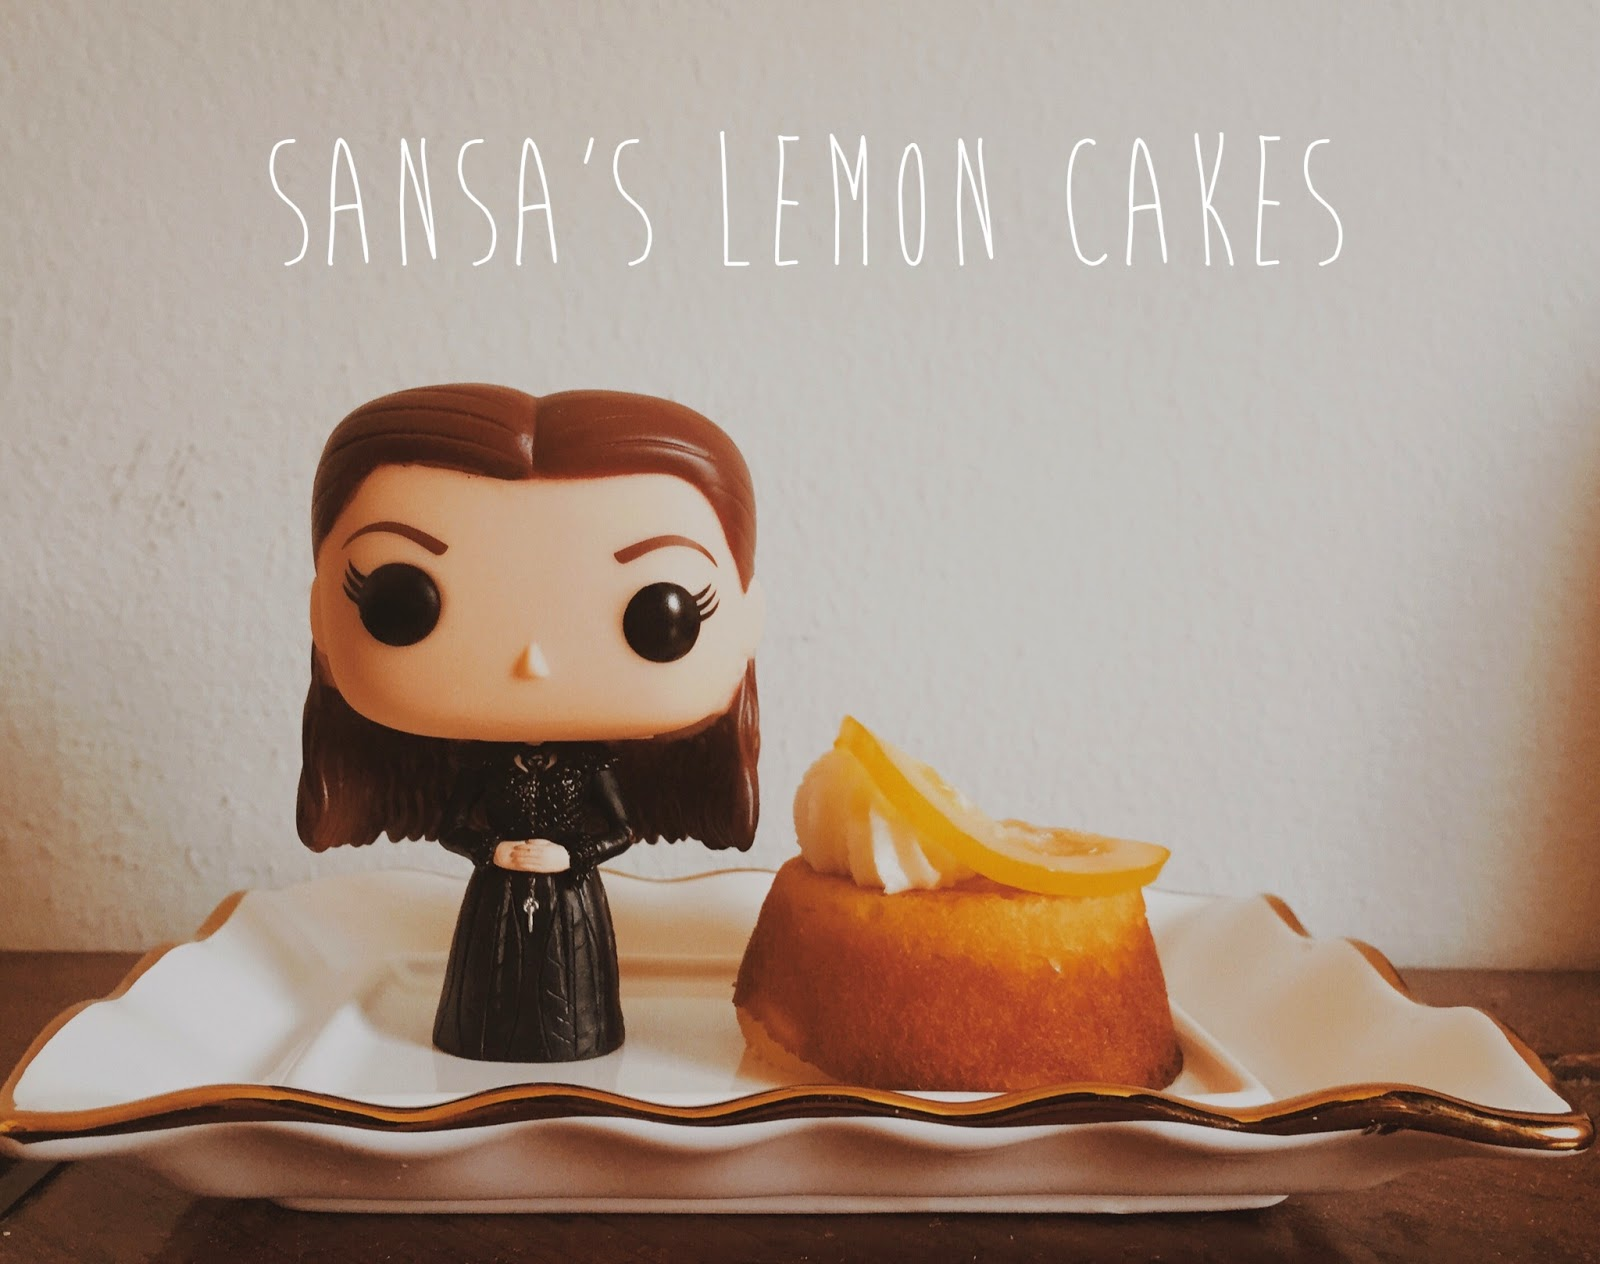 Game of Thrones: Sansa's Lemon Cakes